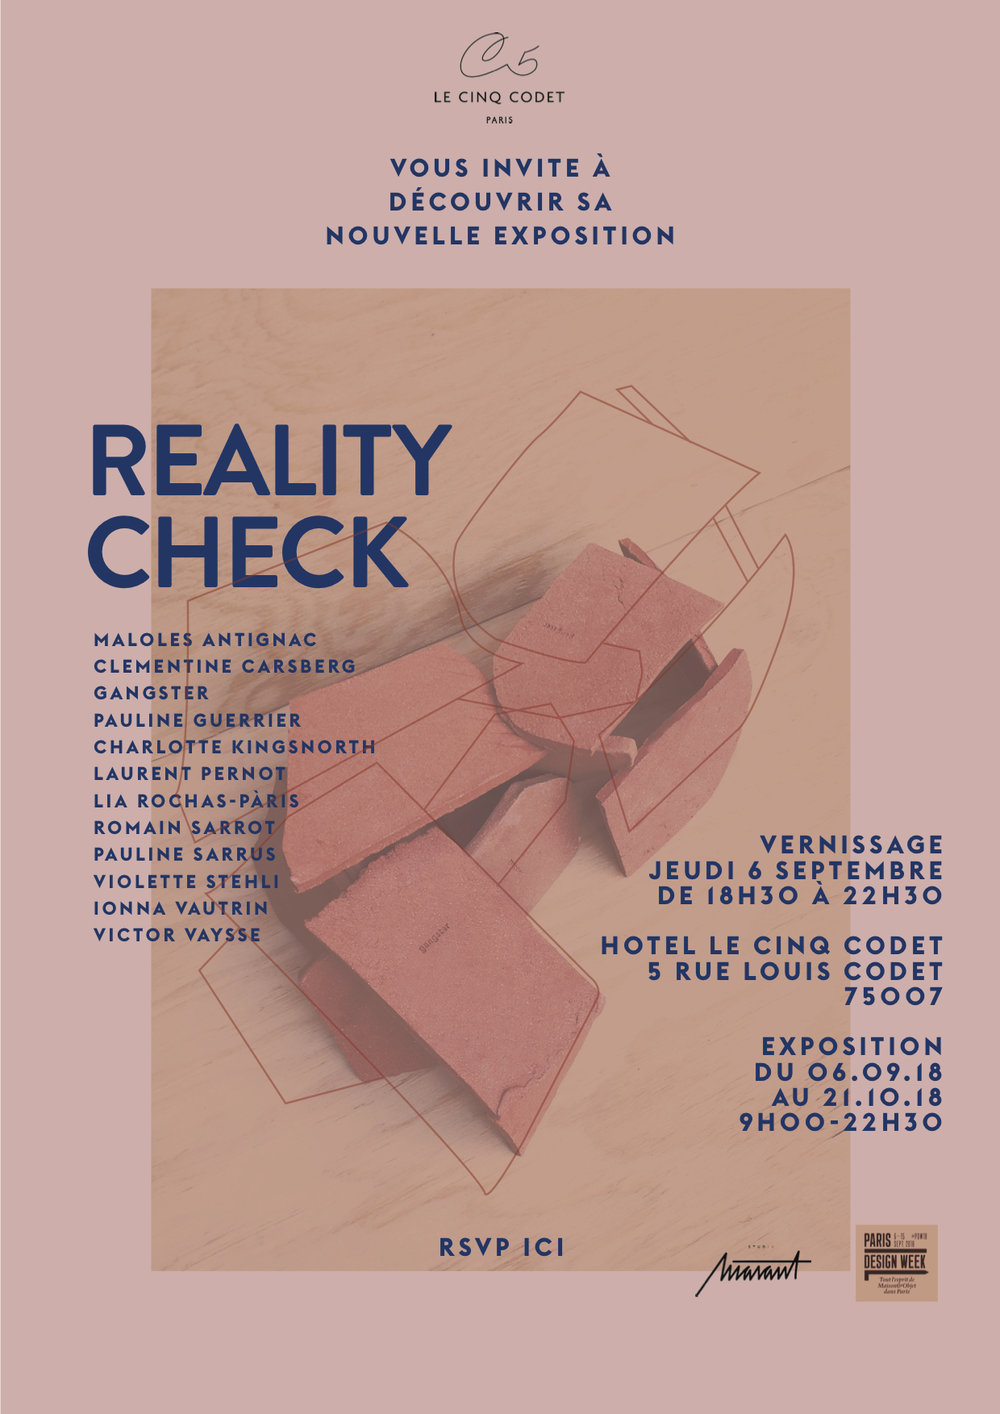 REALITY_CHECK_INVITATION.27.07.jpg